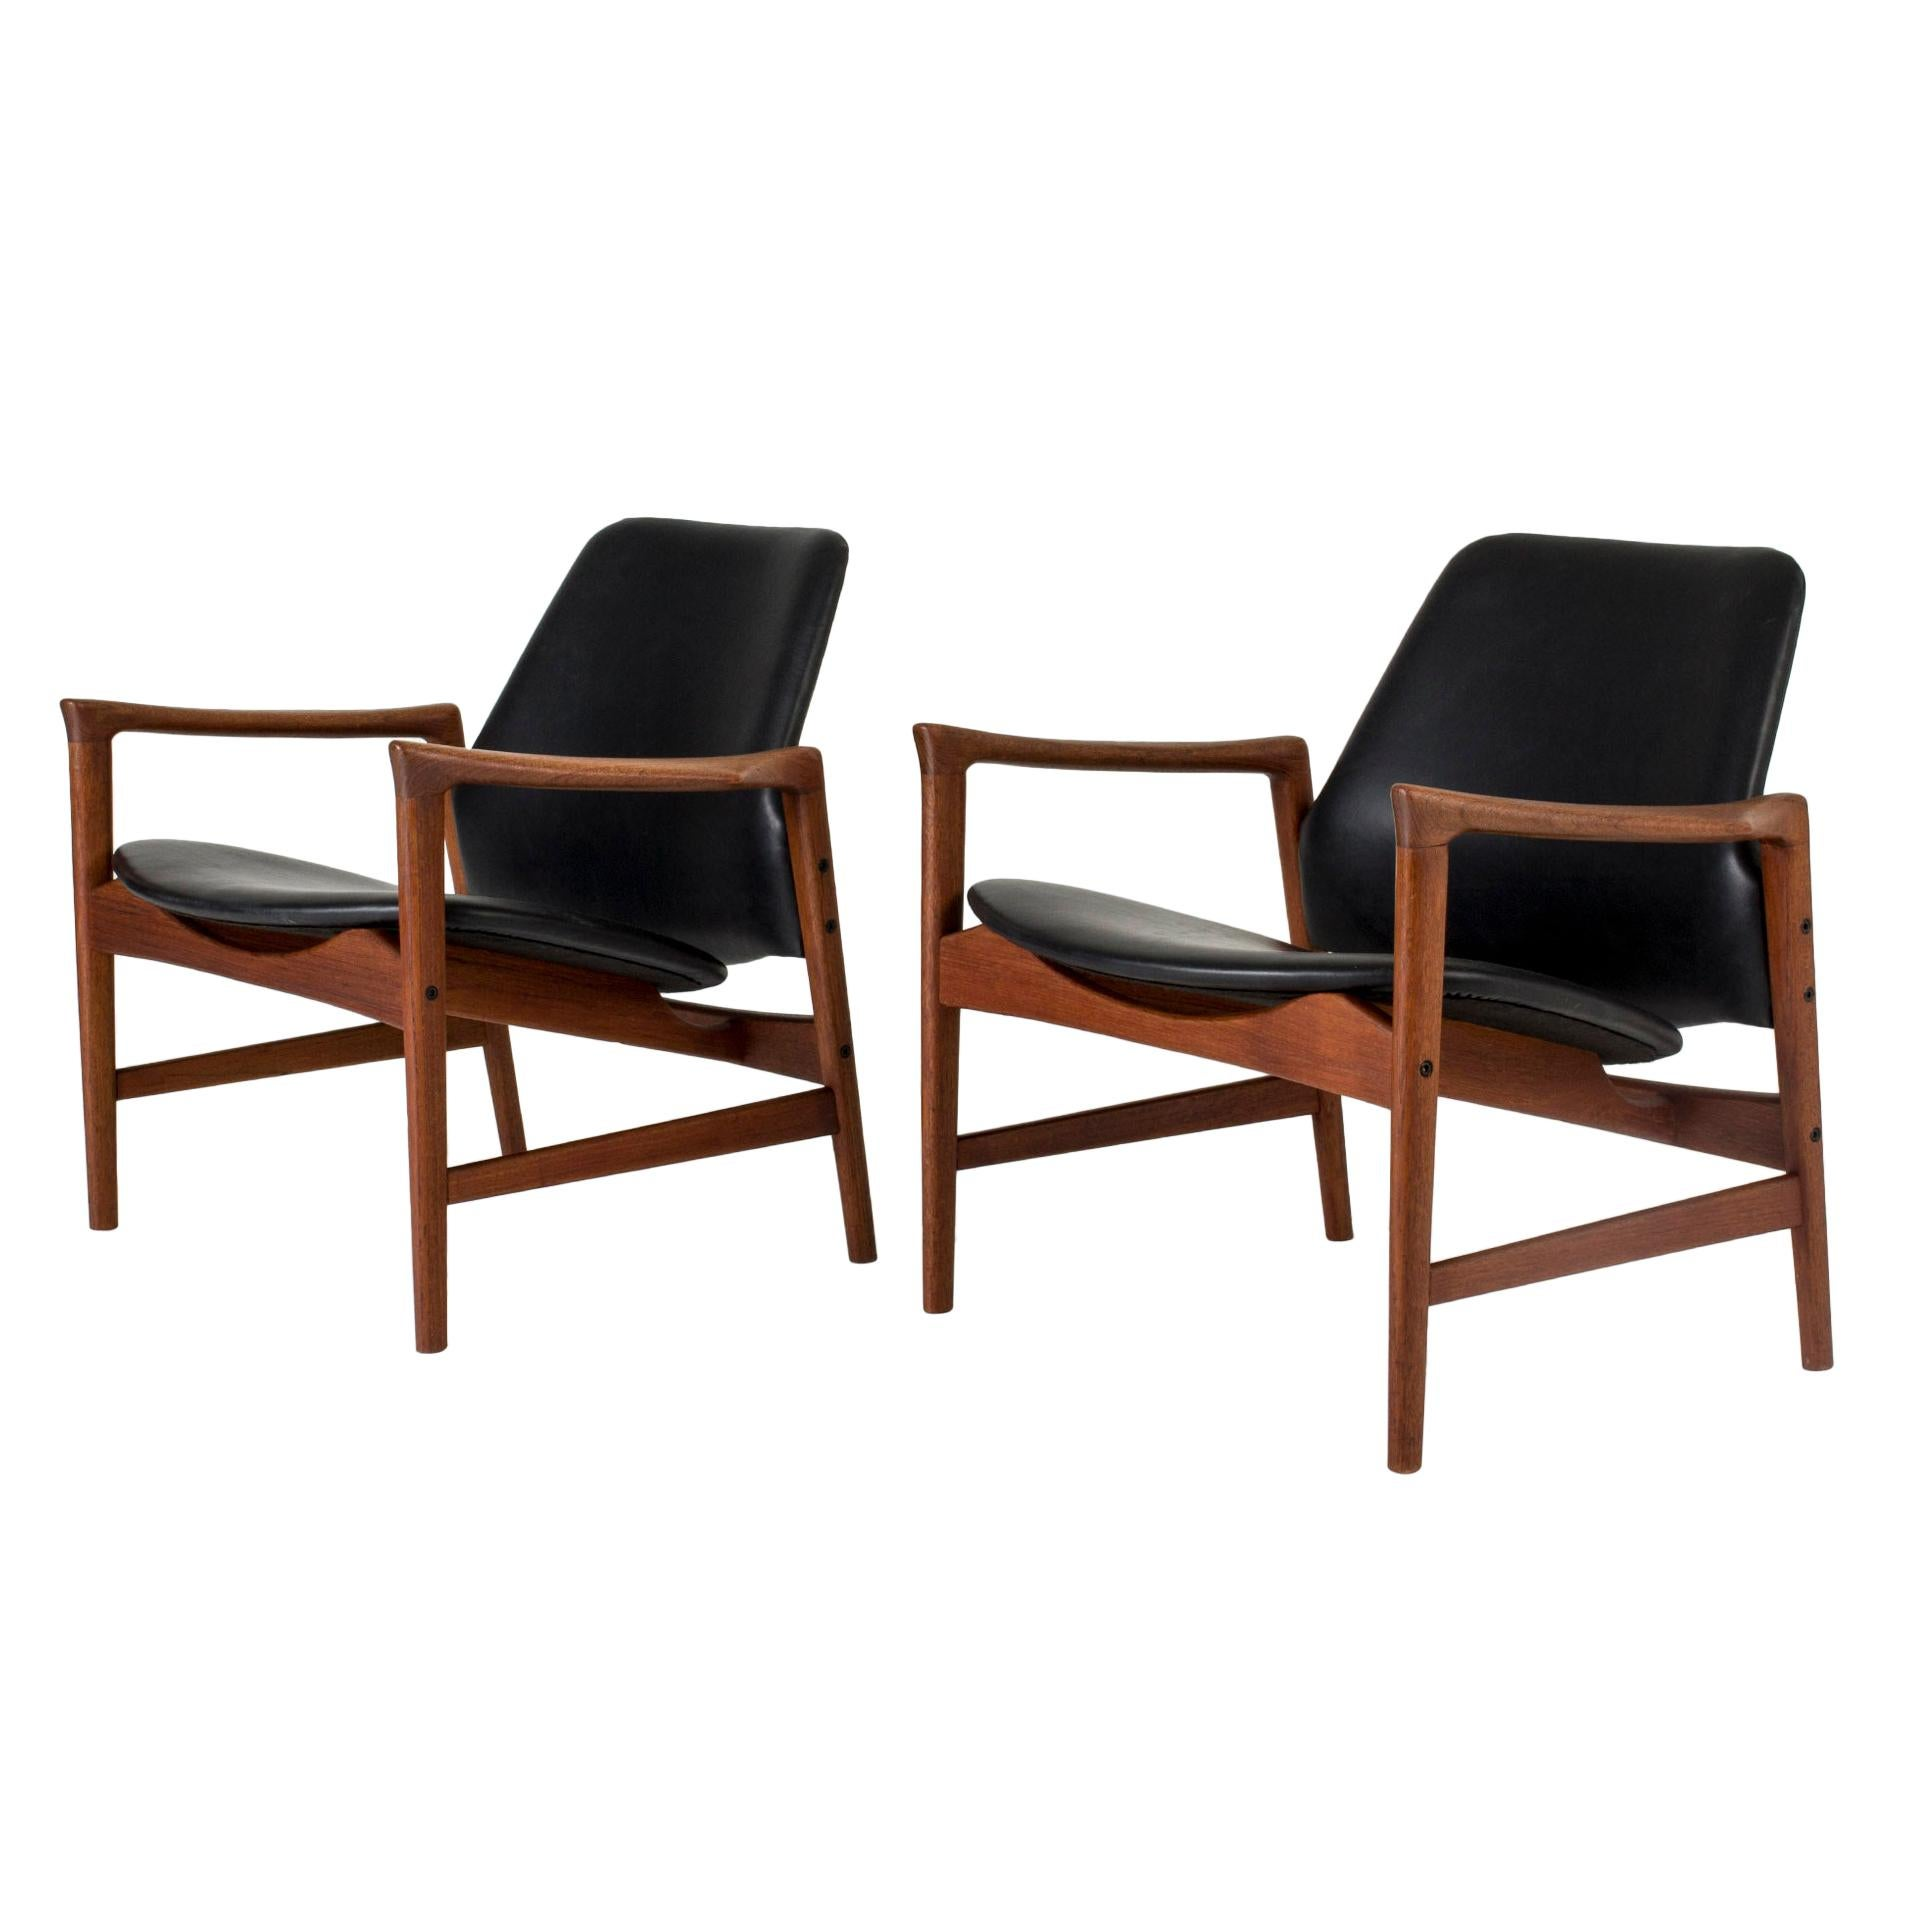 """Pair of """"Holte"""" Lounge Chairs by Ib Kofod Larsen"""